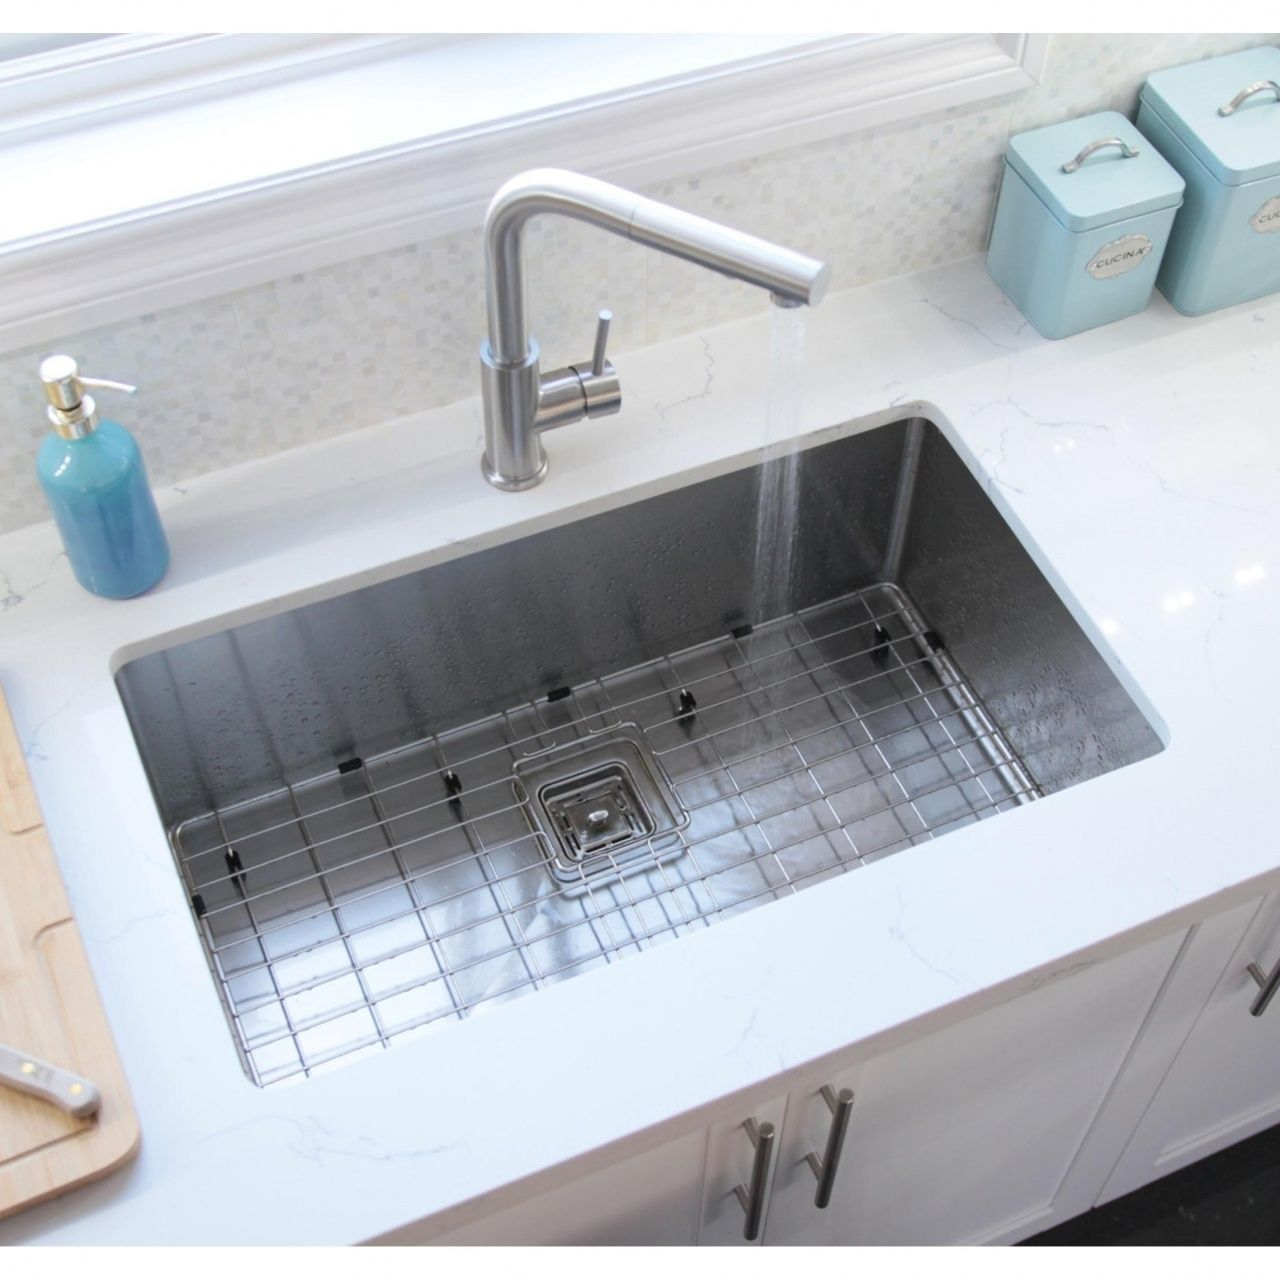 Kitchen Sink Size For 30 Inch Cabinet In 2020 With Images Sink